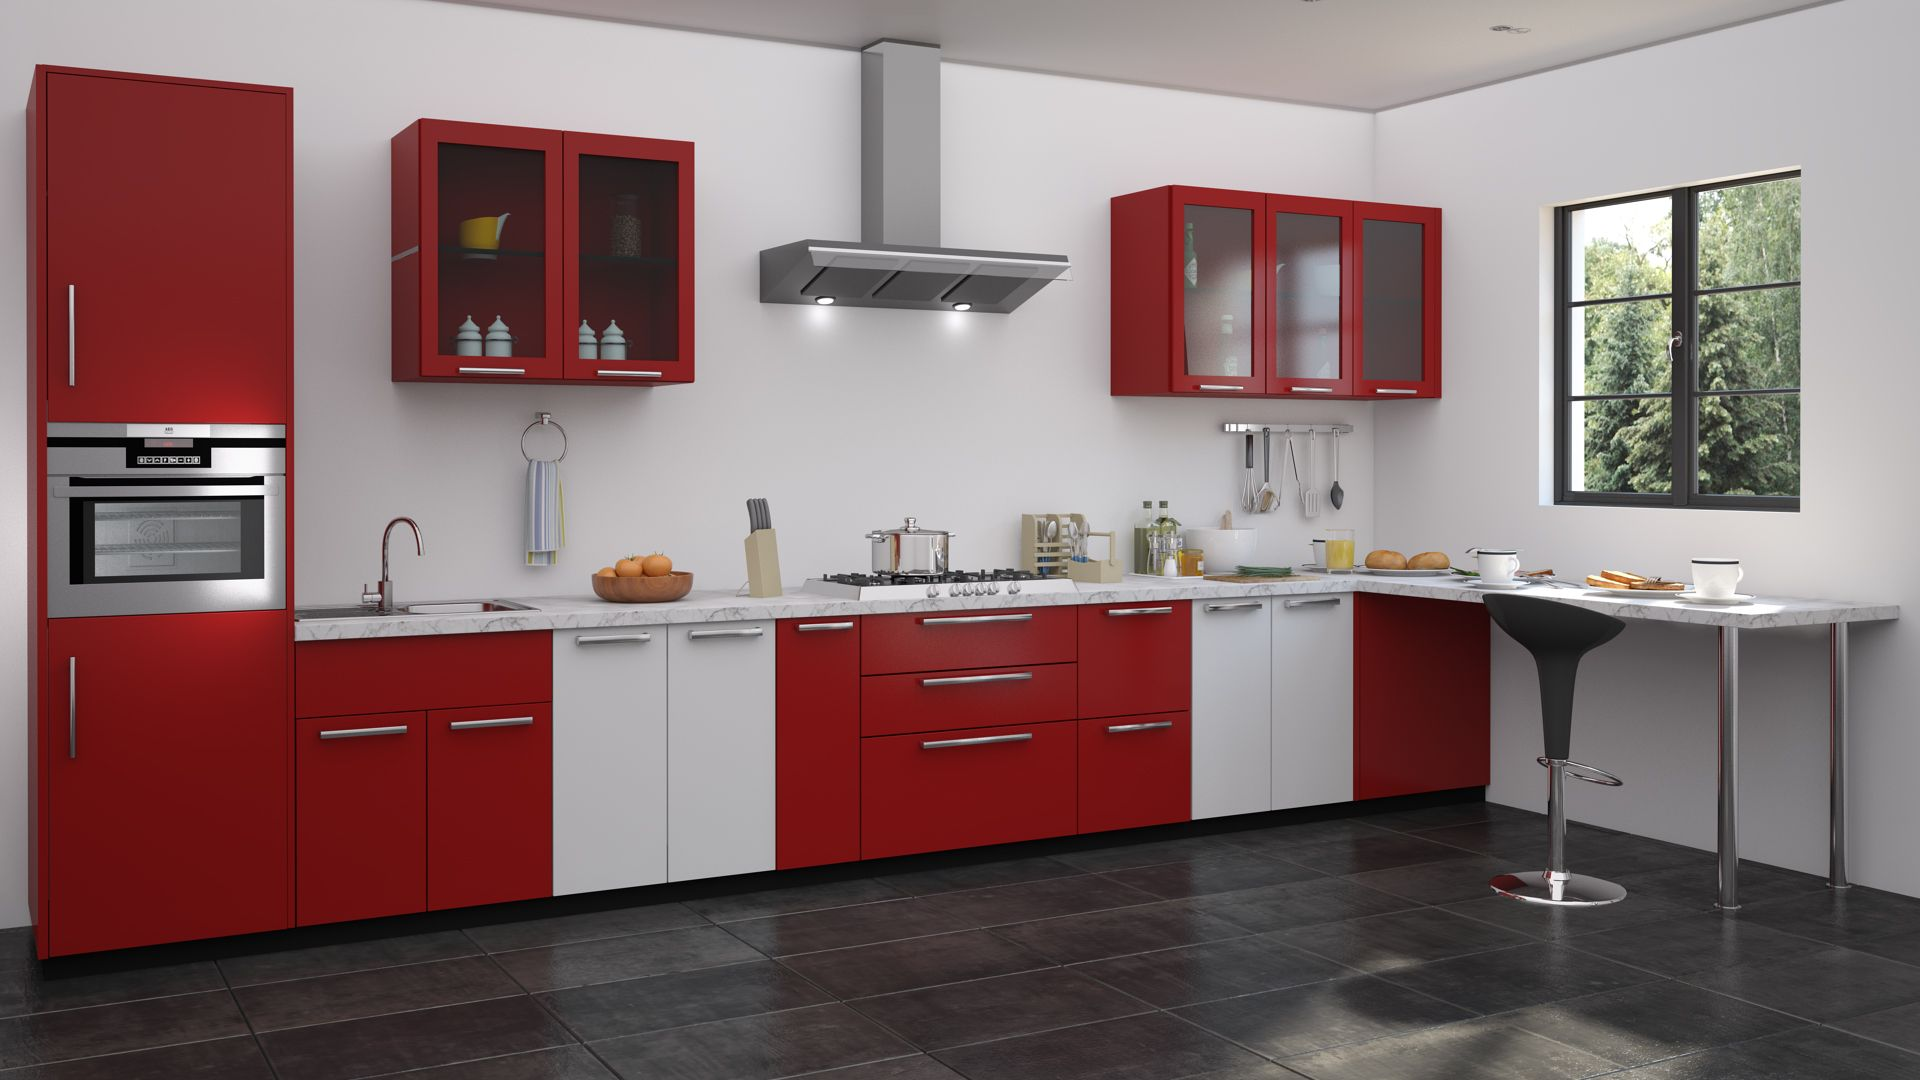 Red And White Kitchen Designs Straight Kitchen Designs Pinterest Kitchen Design Kitchens